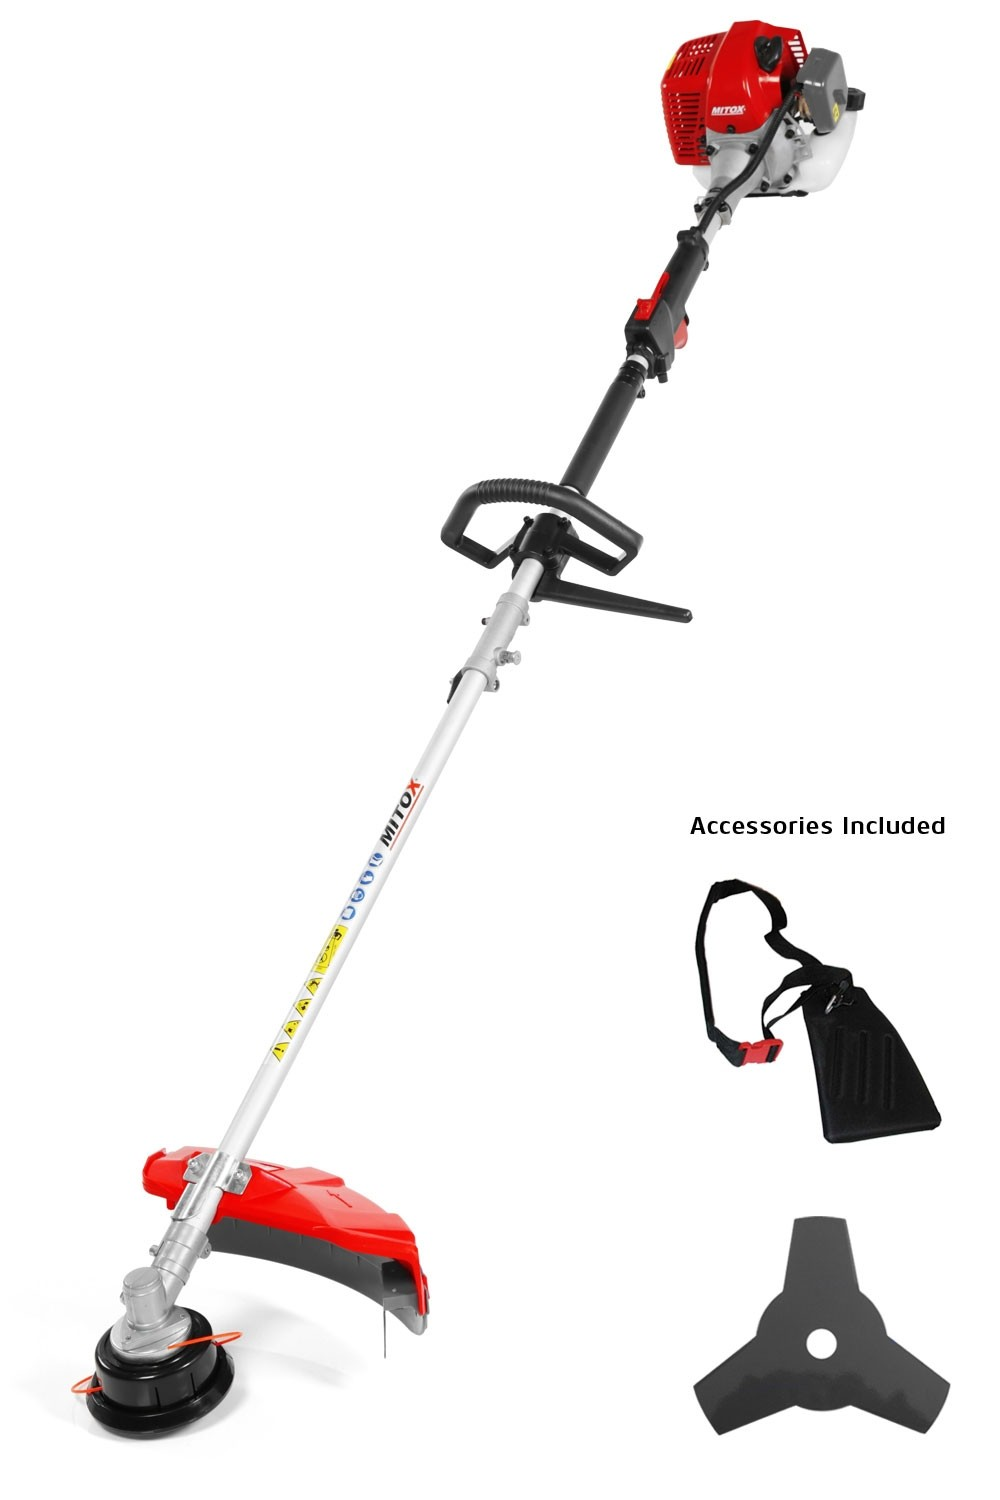 Mitox 26L-SP Petrol Brushcutter / Trimmer